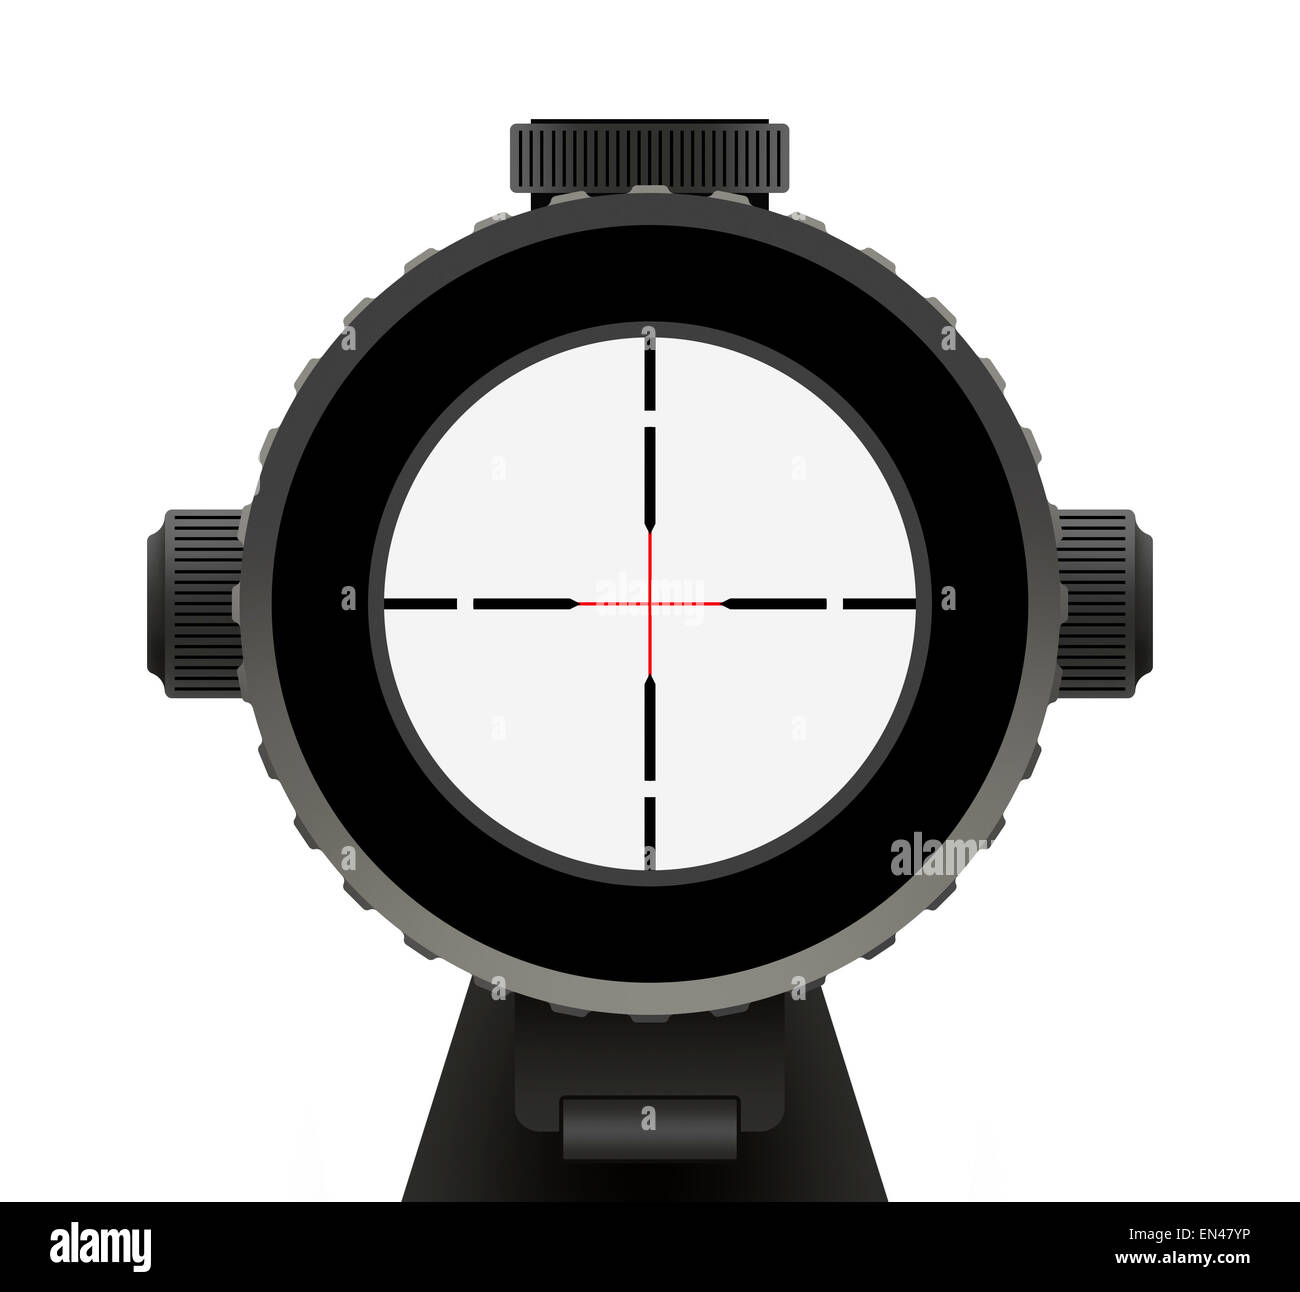 Riffle Scope with Red crosshair Isolated on White Background. - Stock Image